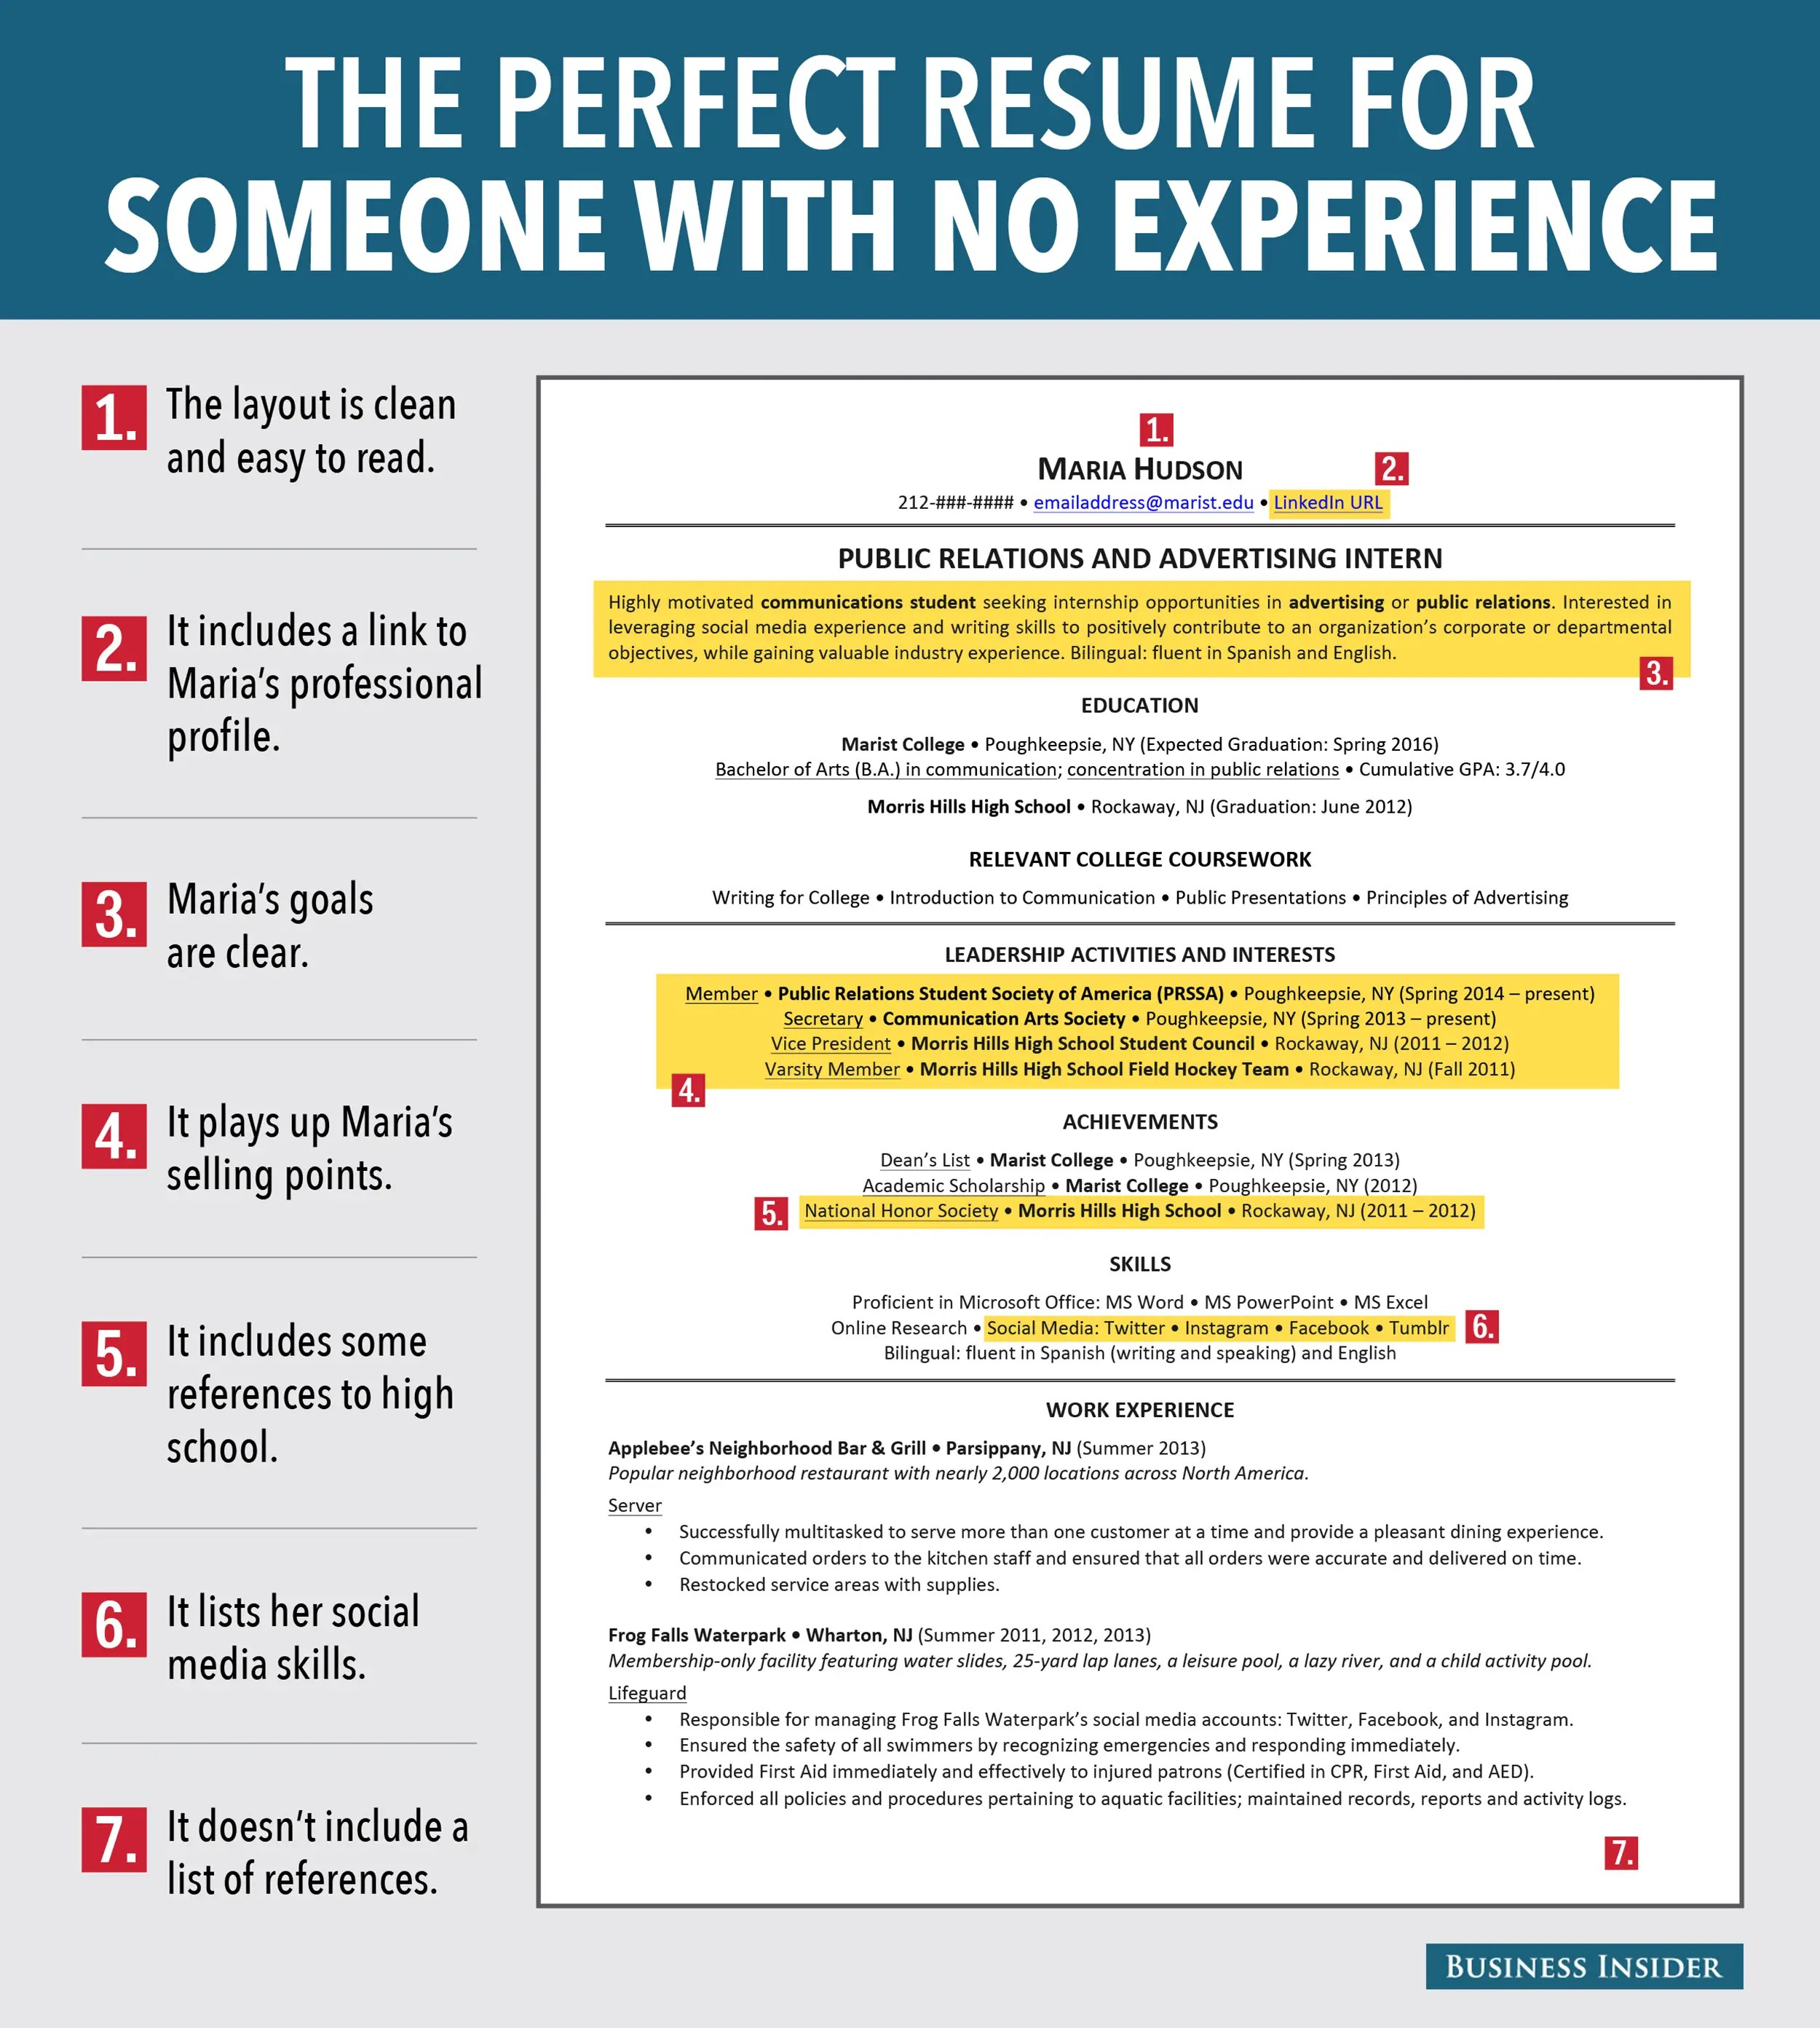 Resume For Job Seeker With No Experience - Business Insider - resume with little experience